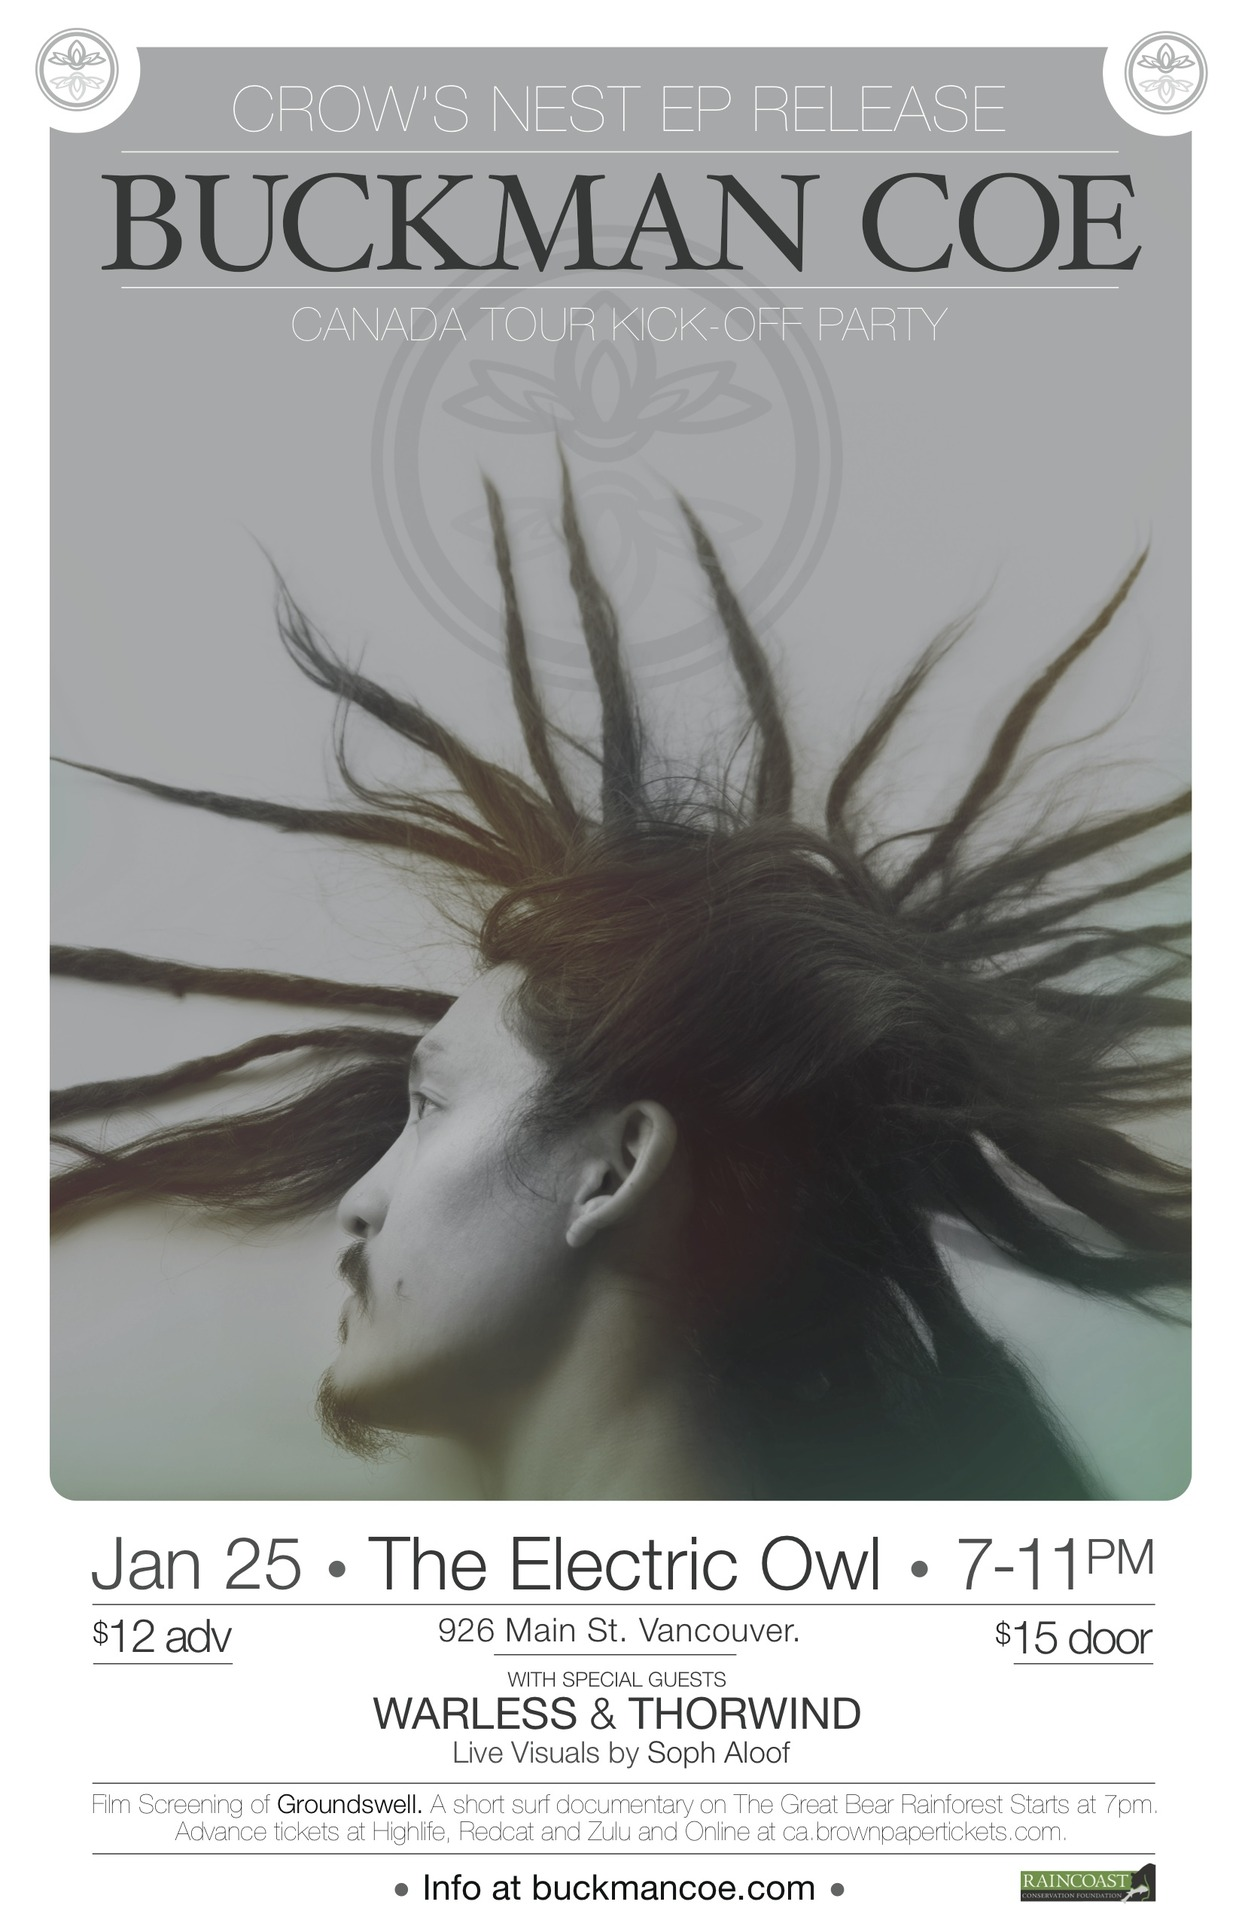 TONIGHT!!! At the Electric Owl. Online tickets are sold out, but there will be tickets at the door still. So pumped for the show, gwan raise the vibration of the universe a glorious percentile of a percentile mon!